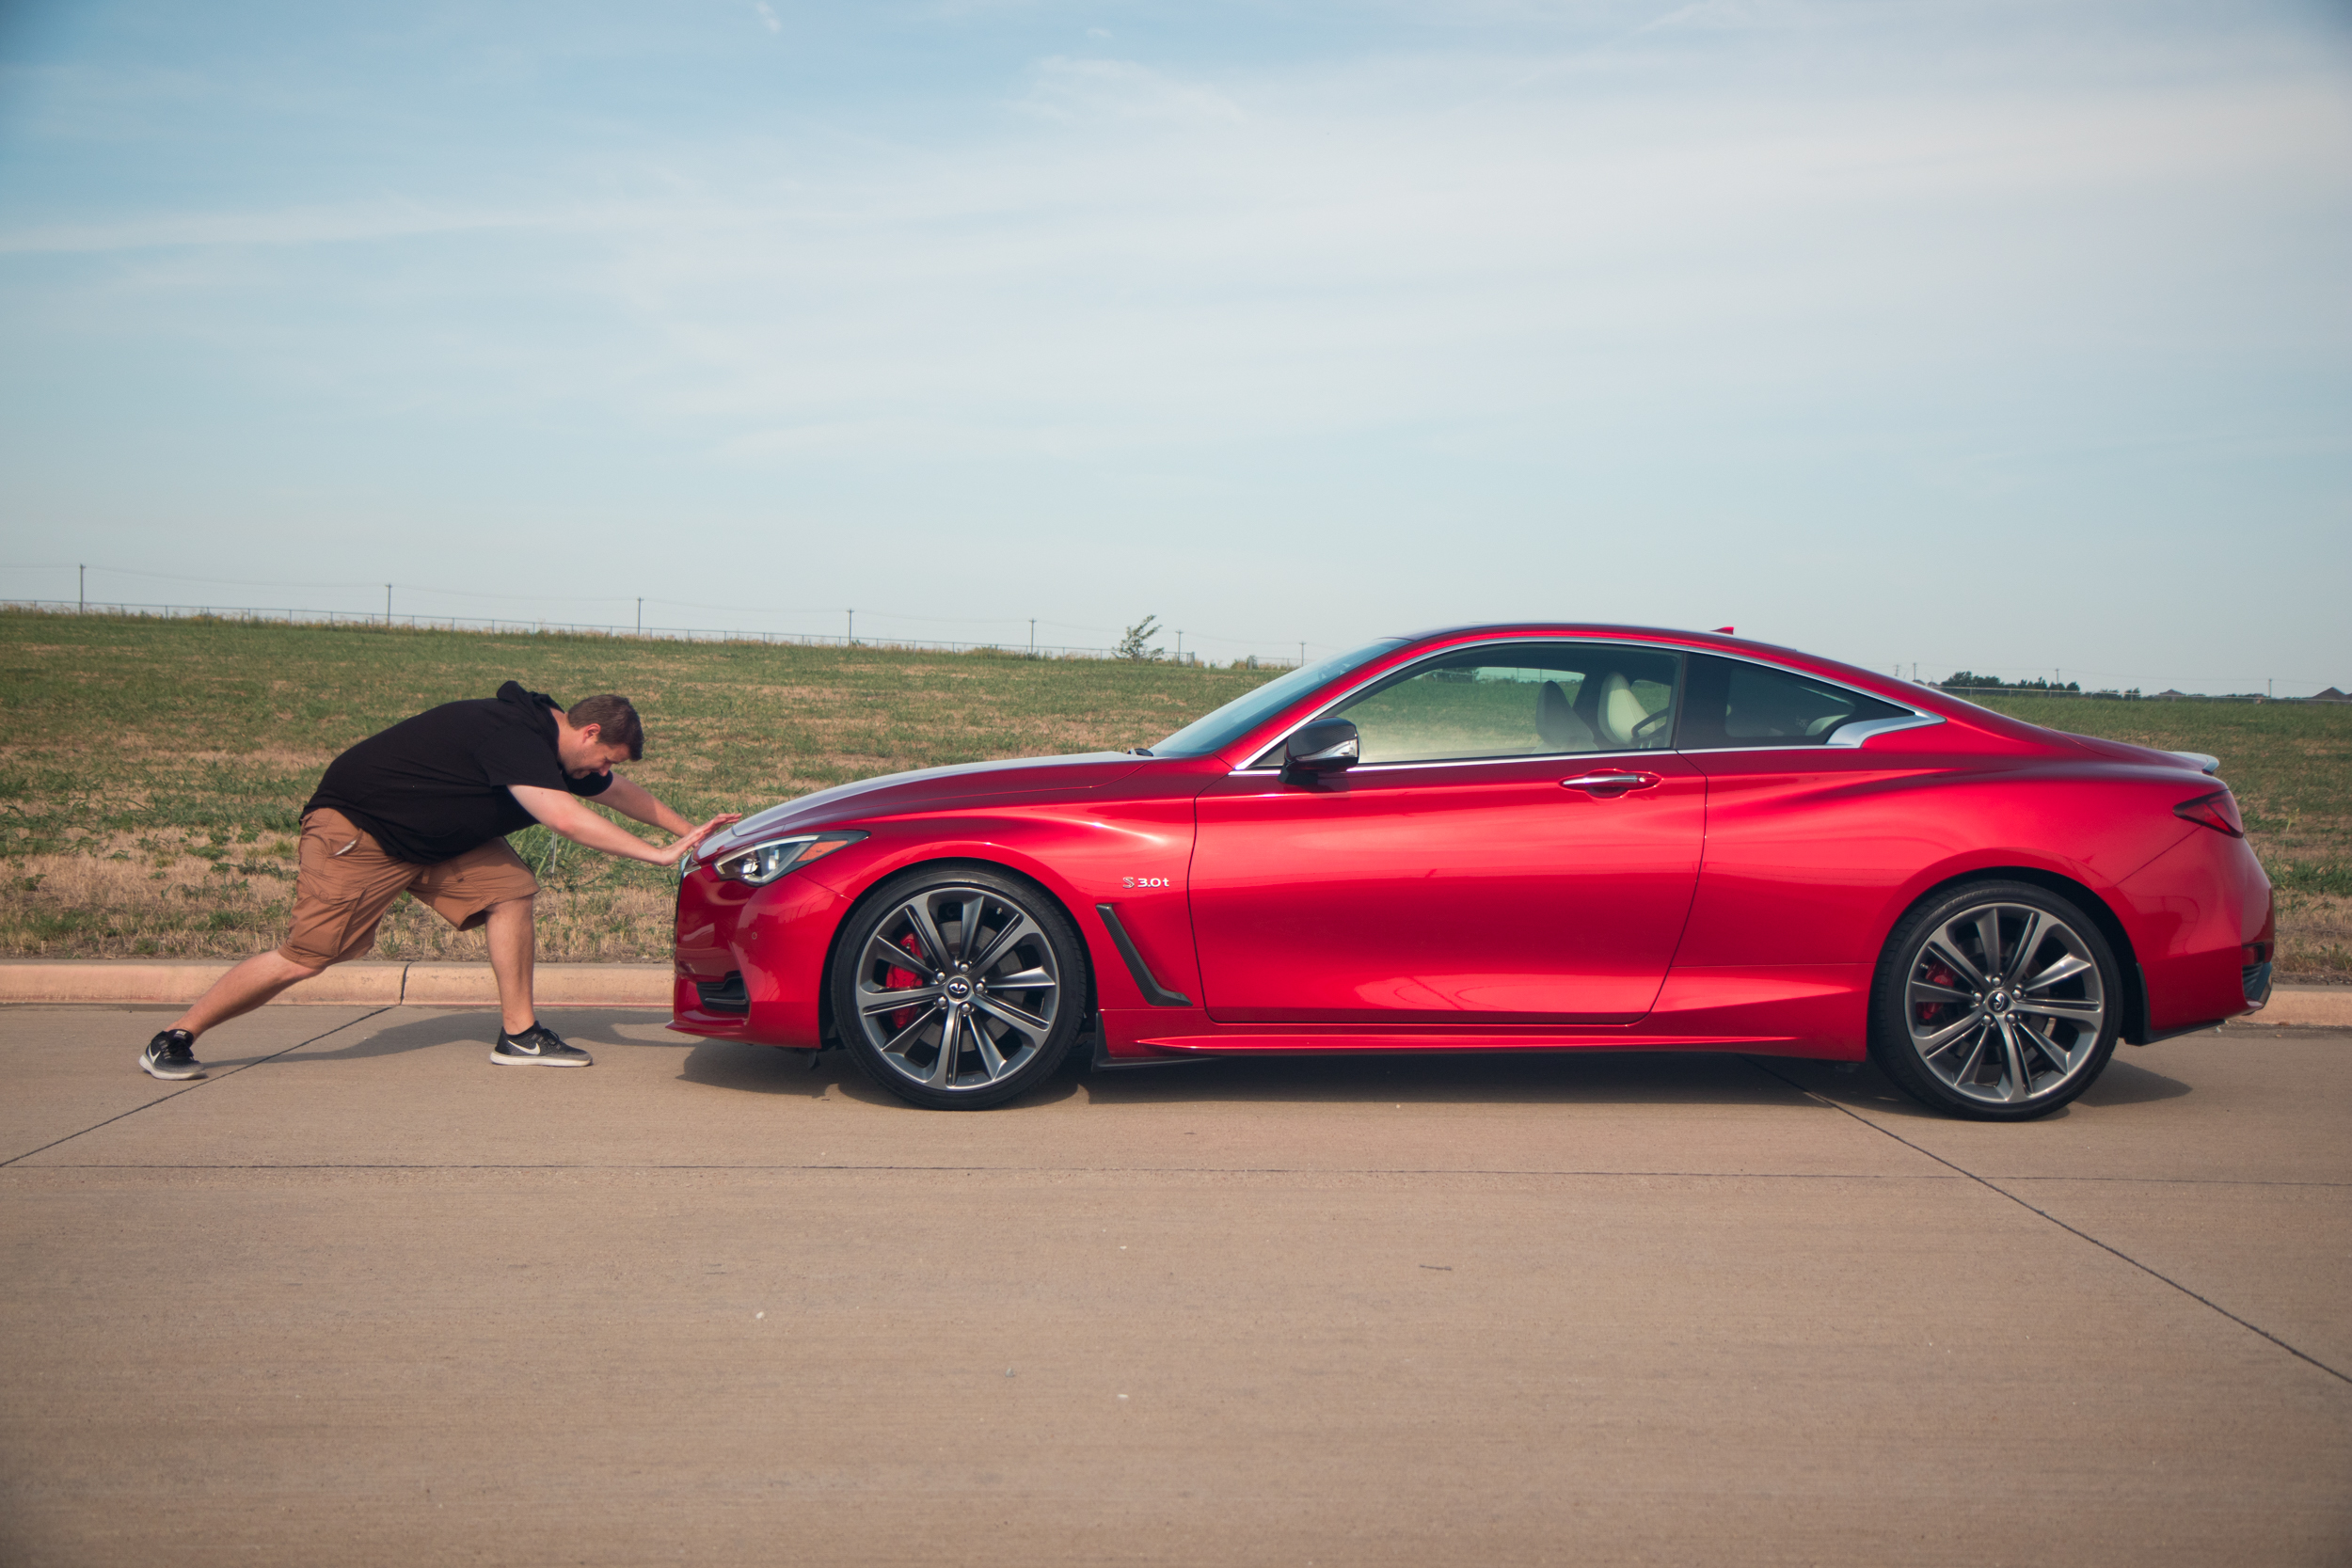 2018-Infiniti-Q60s-Red-Sport-400–txgarage—16